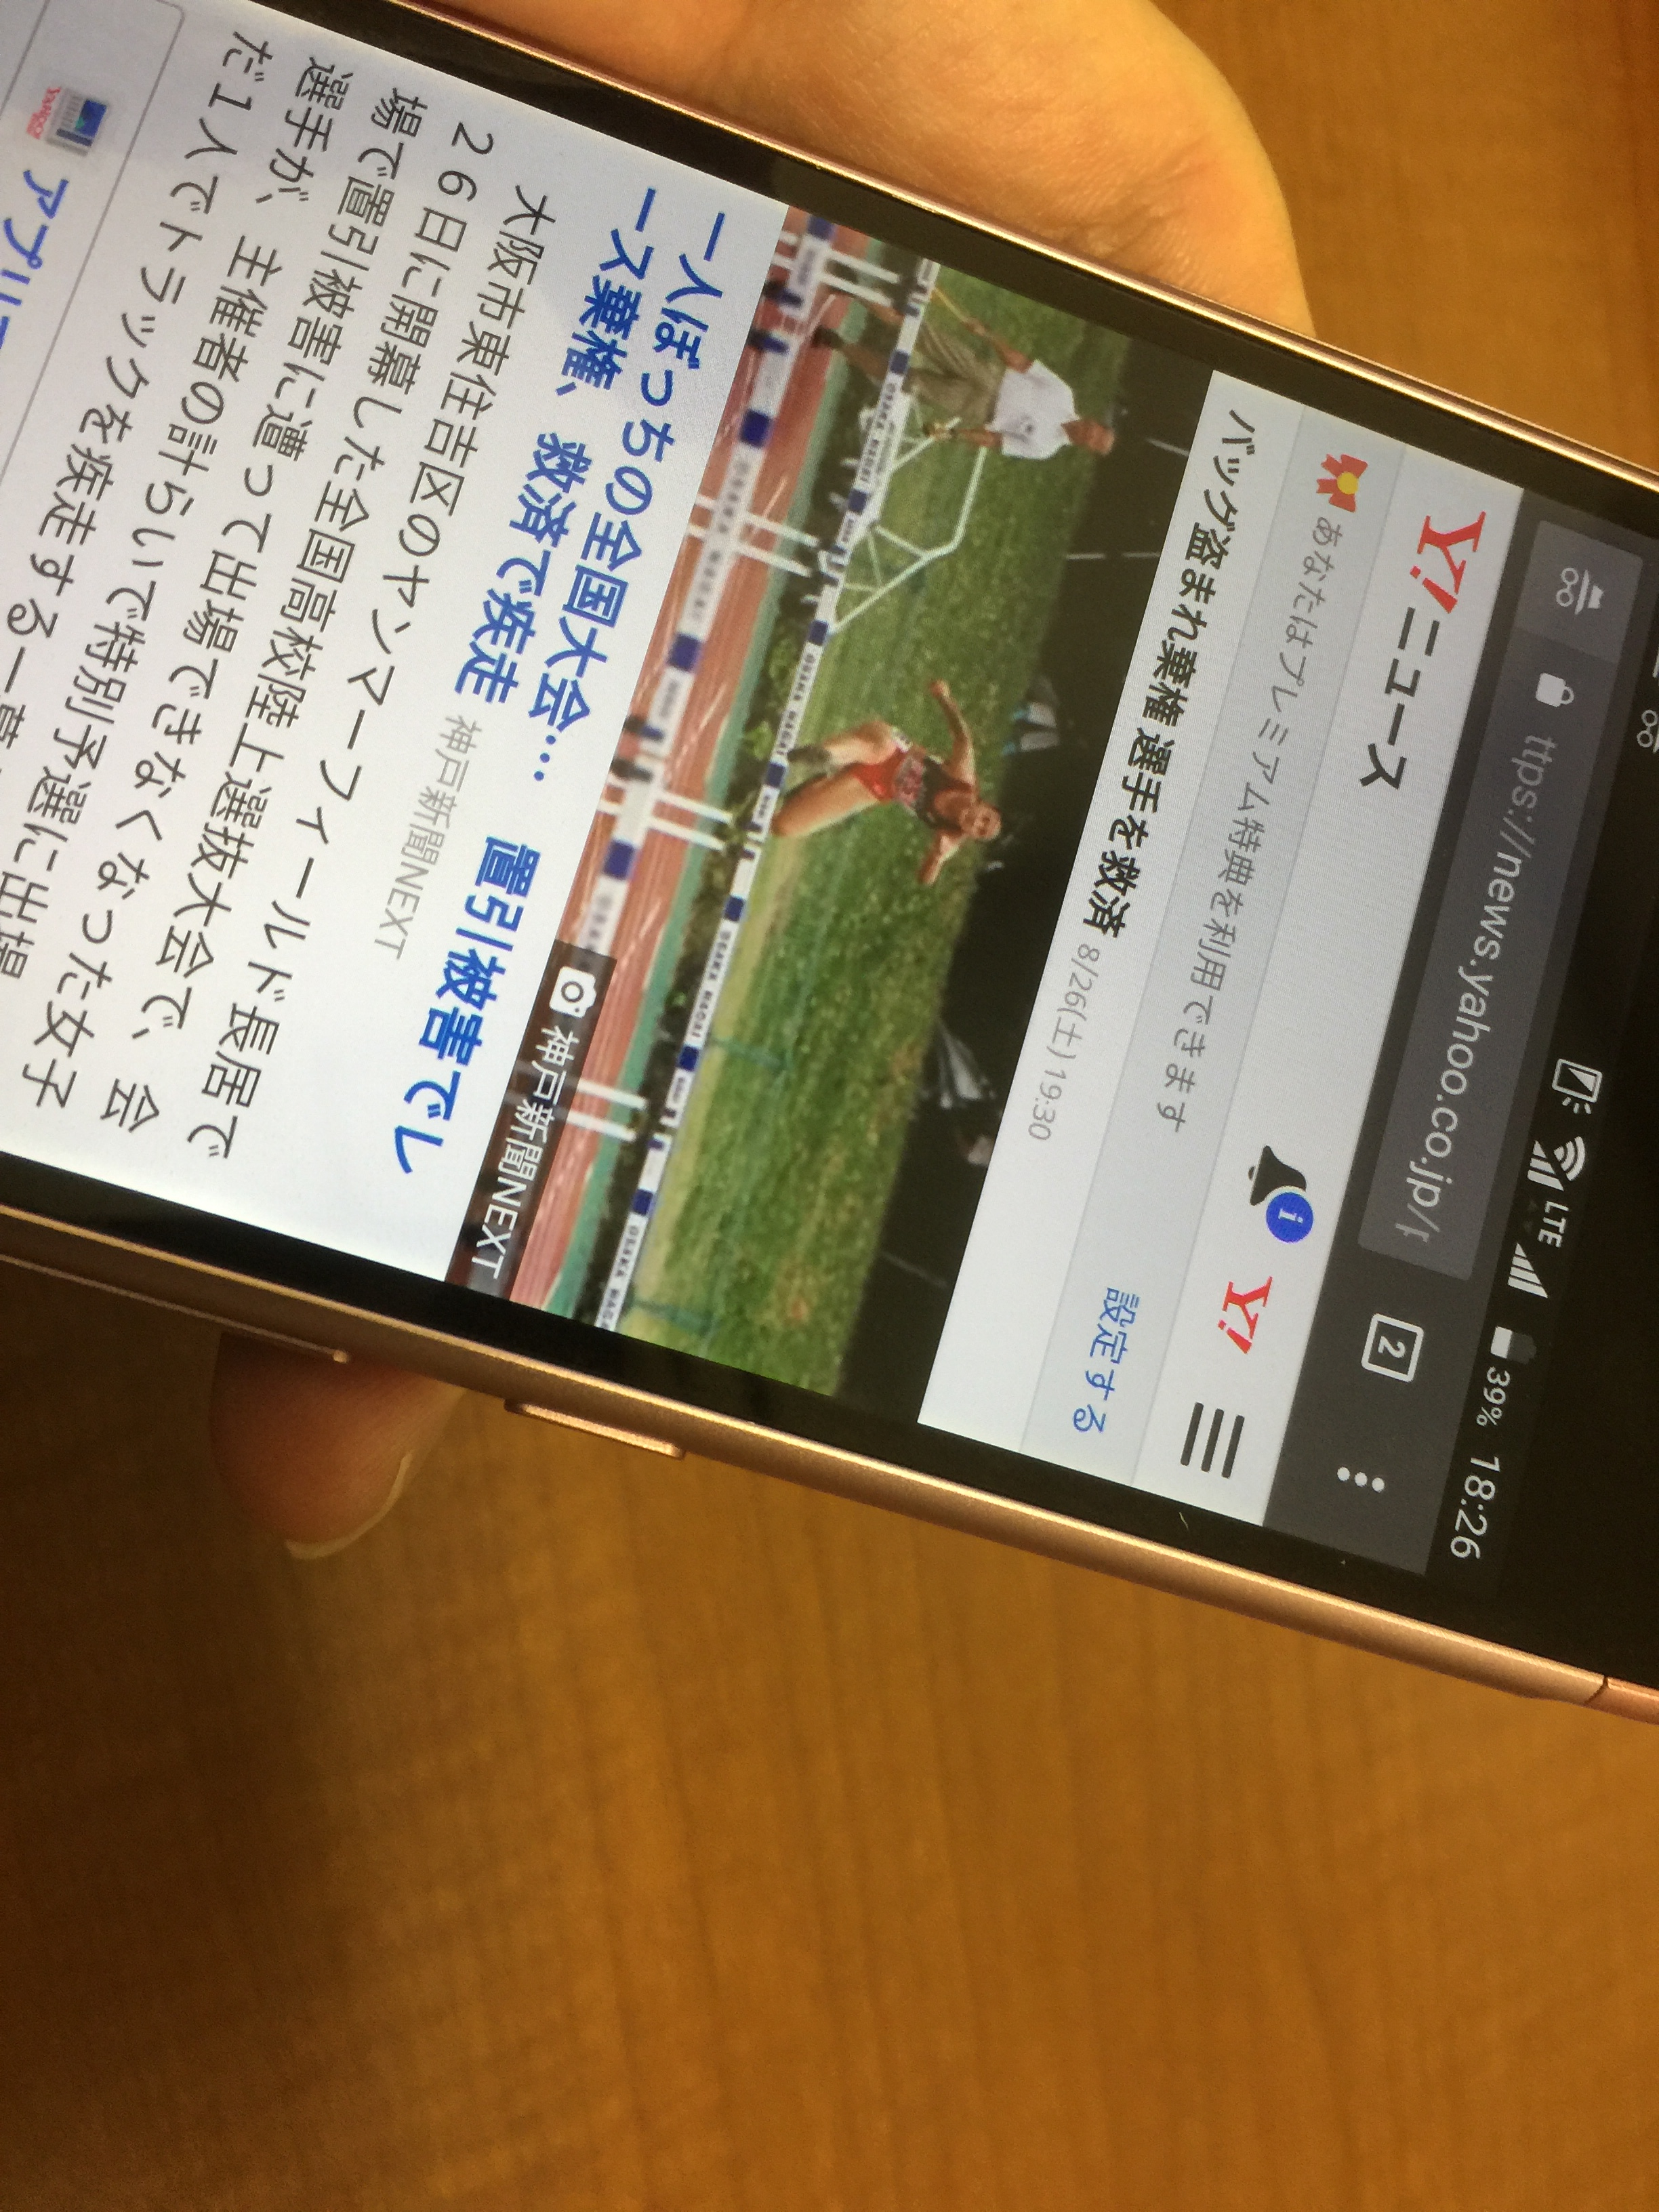 Y!mobileでネット